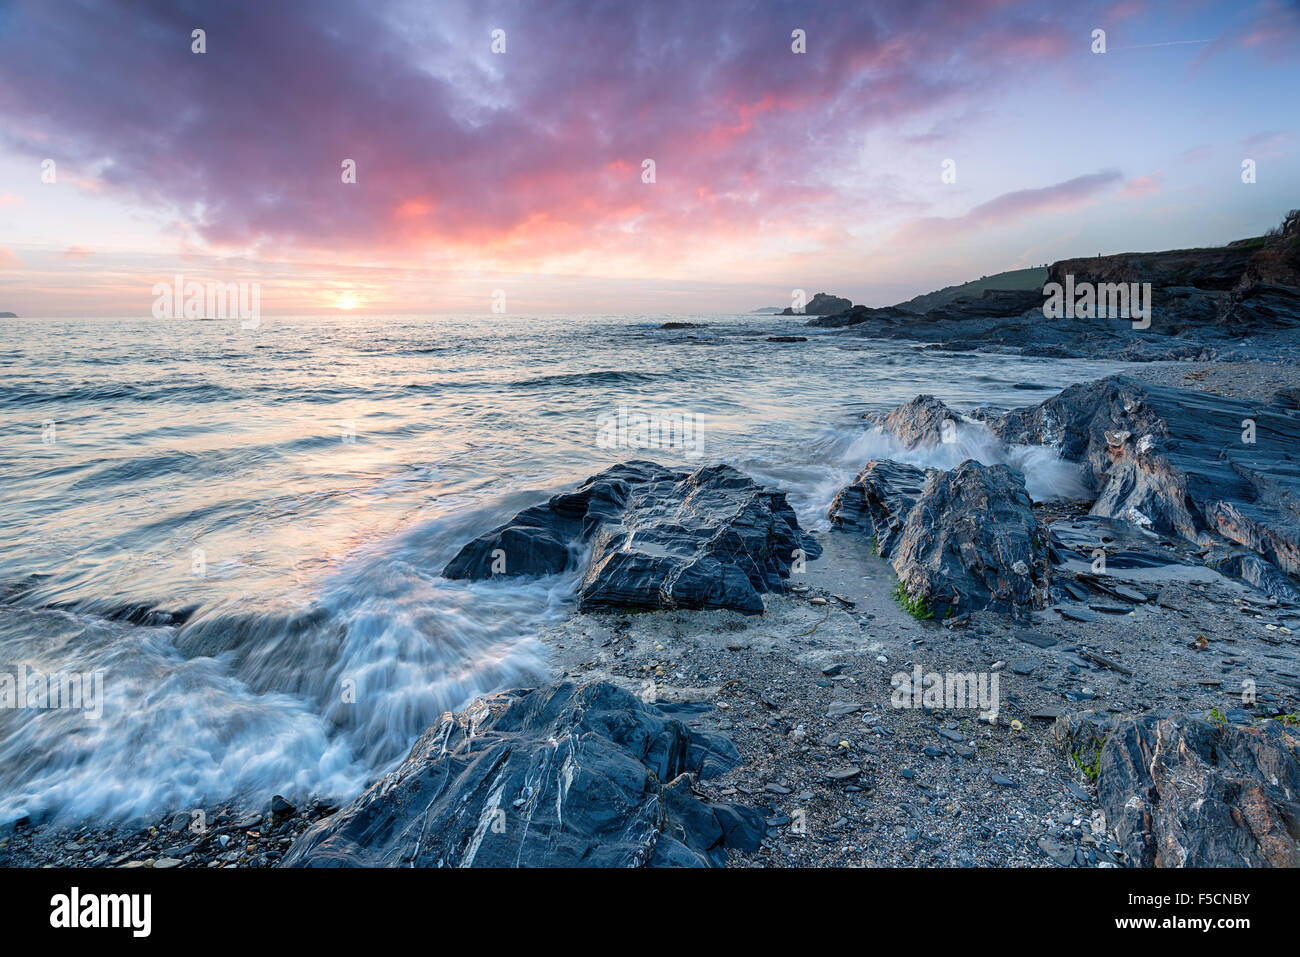 Stunning sunset over the rocky beach at Trevone Bay near Padstow in Cornwall - Stock Image